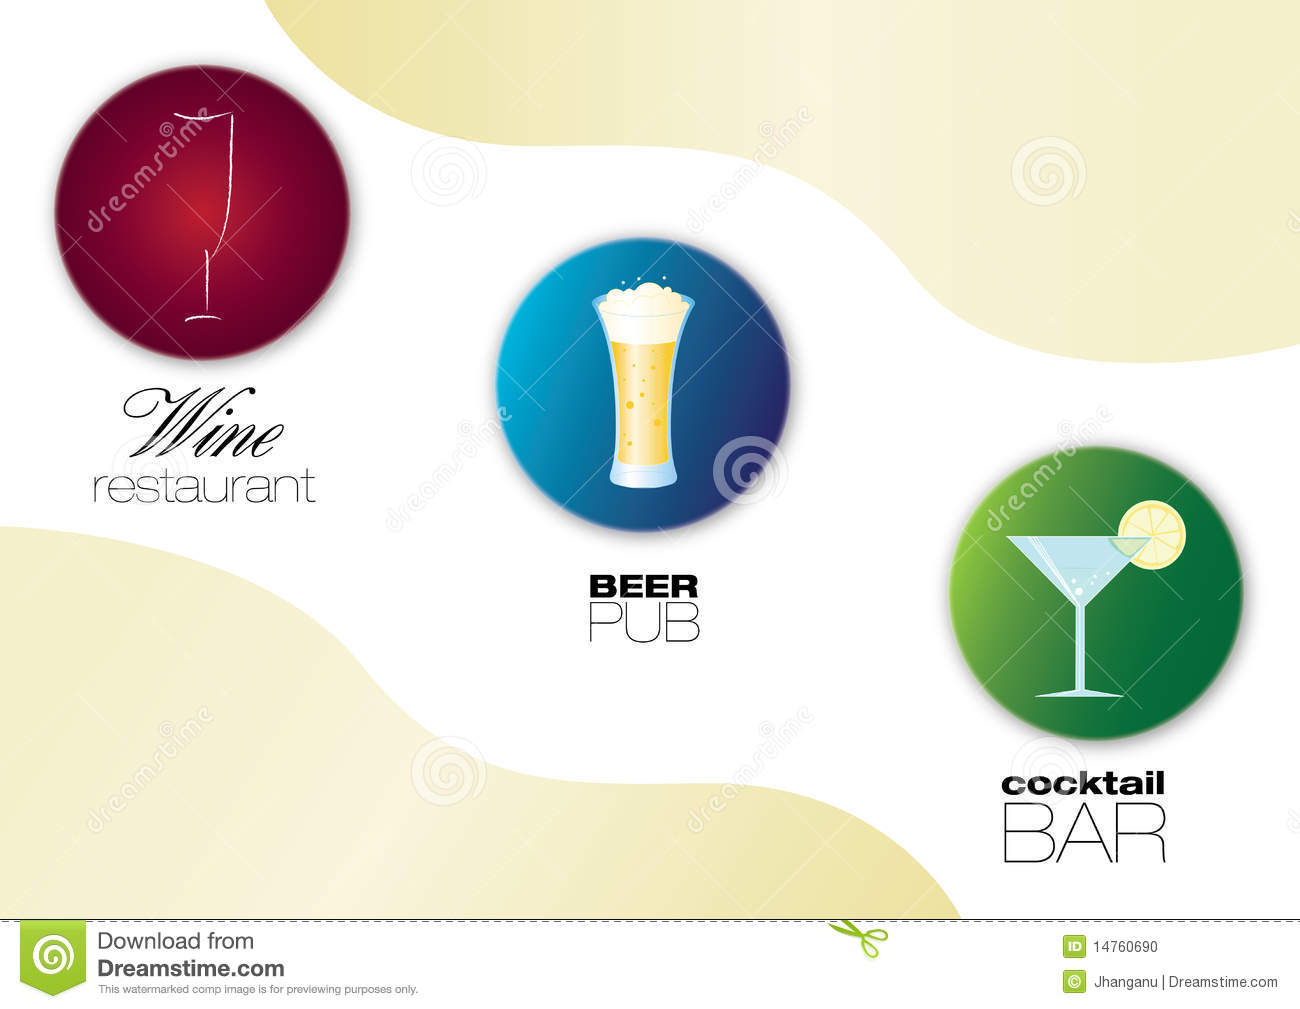 Wine Restaurant Beer Pub And Cocktail Bar Icons Stock